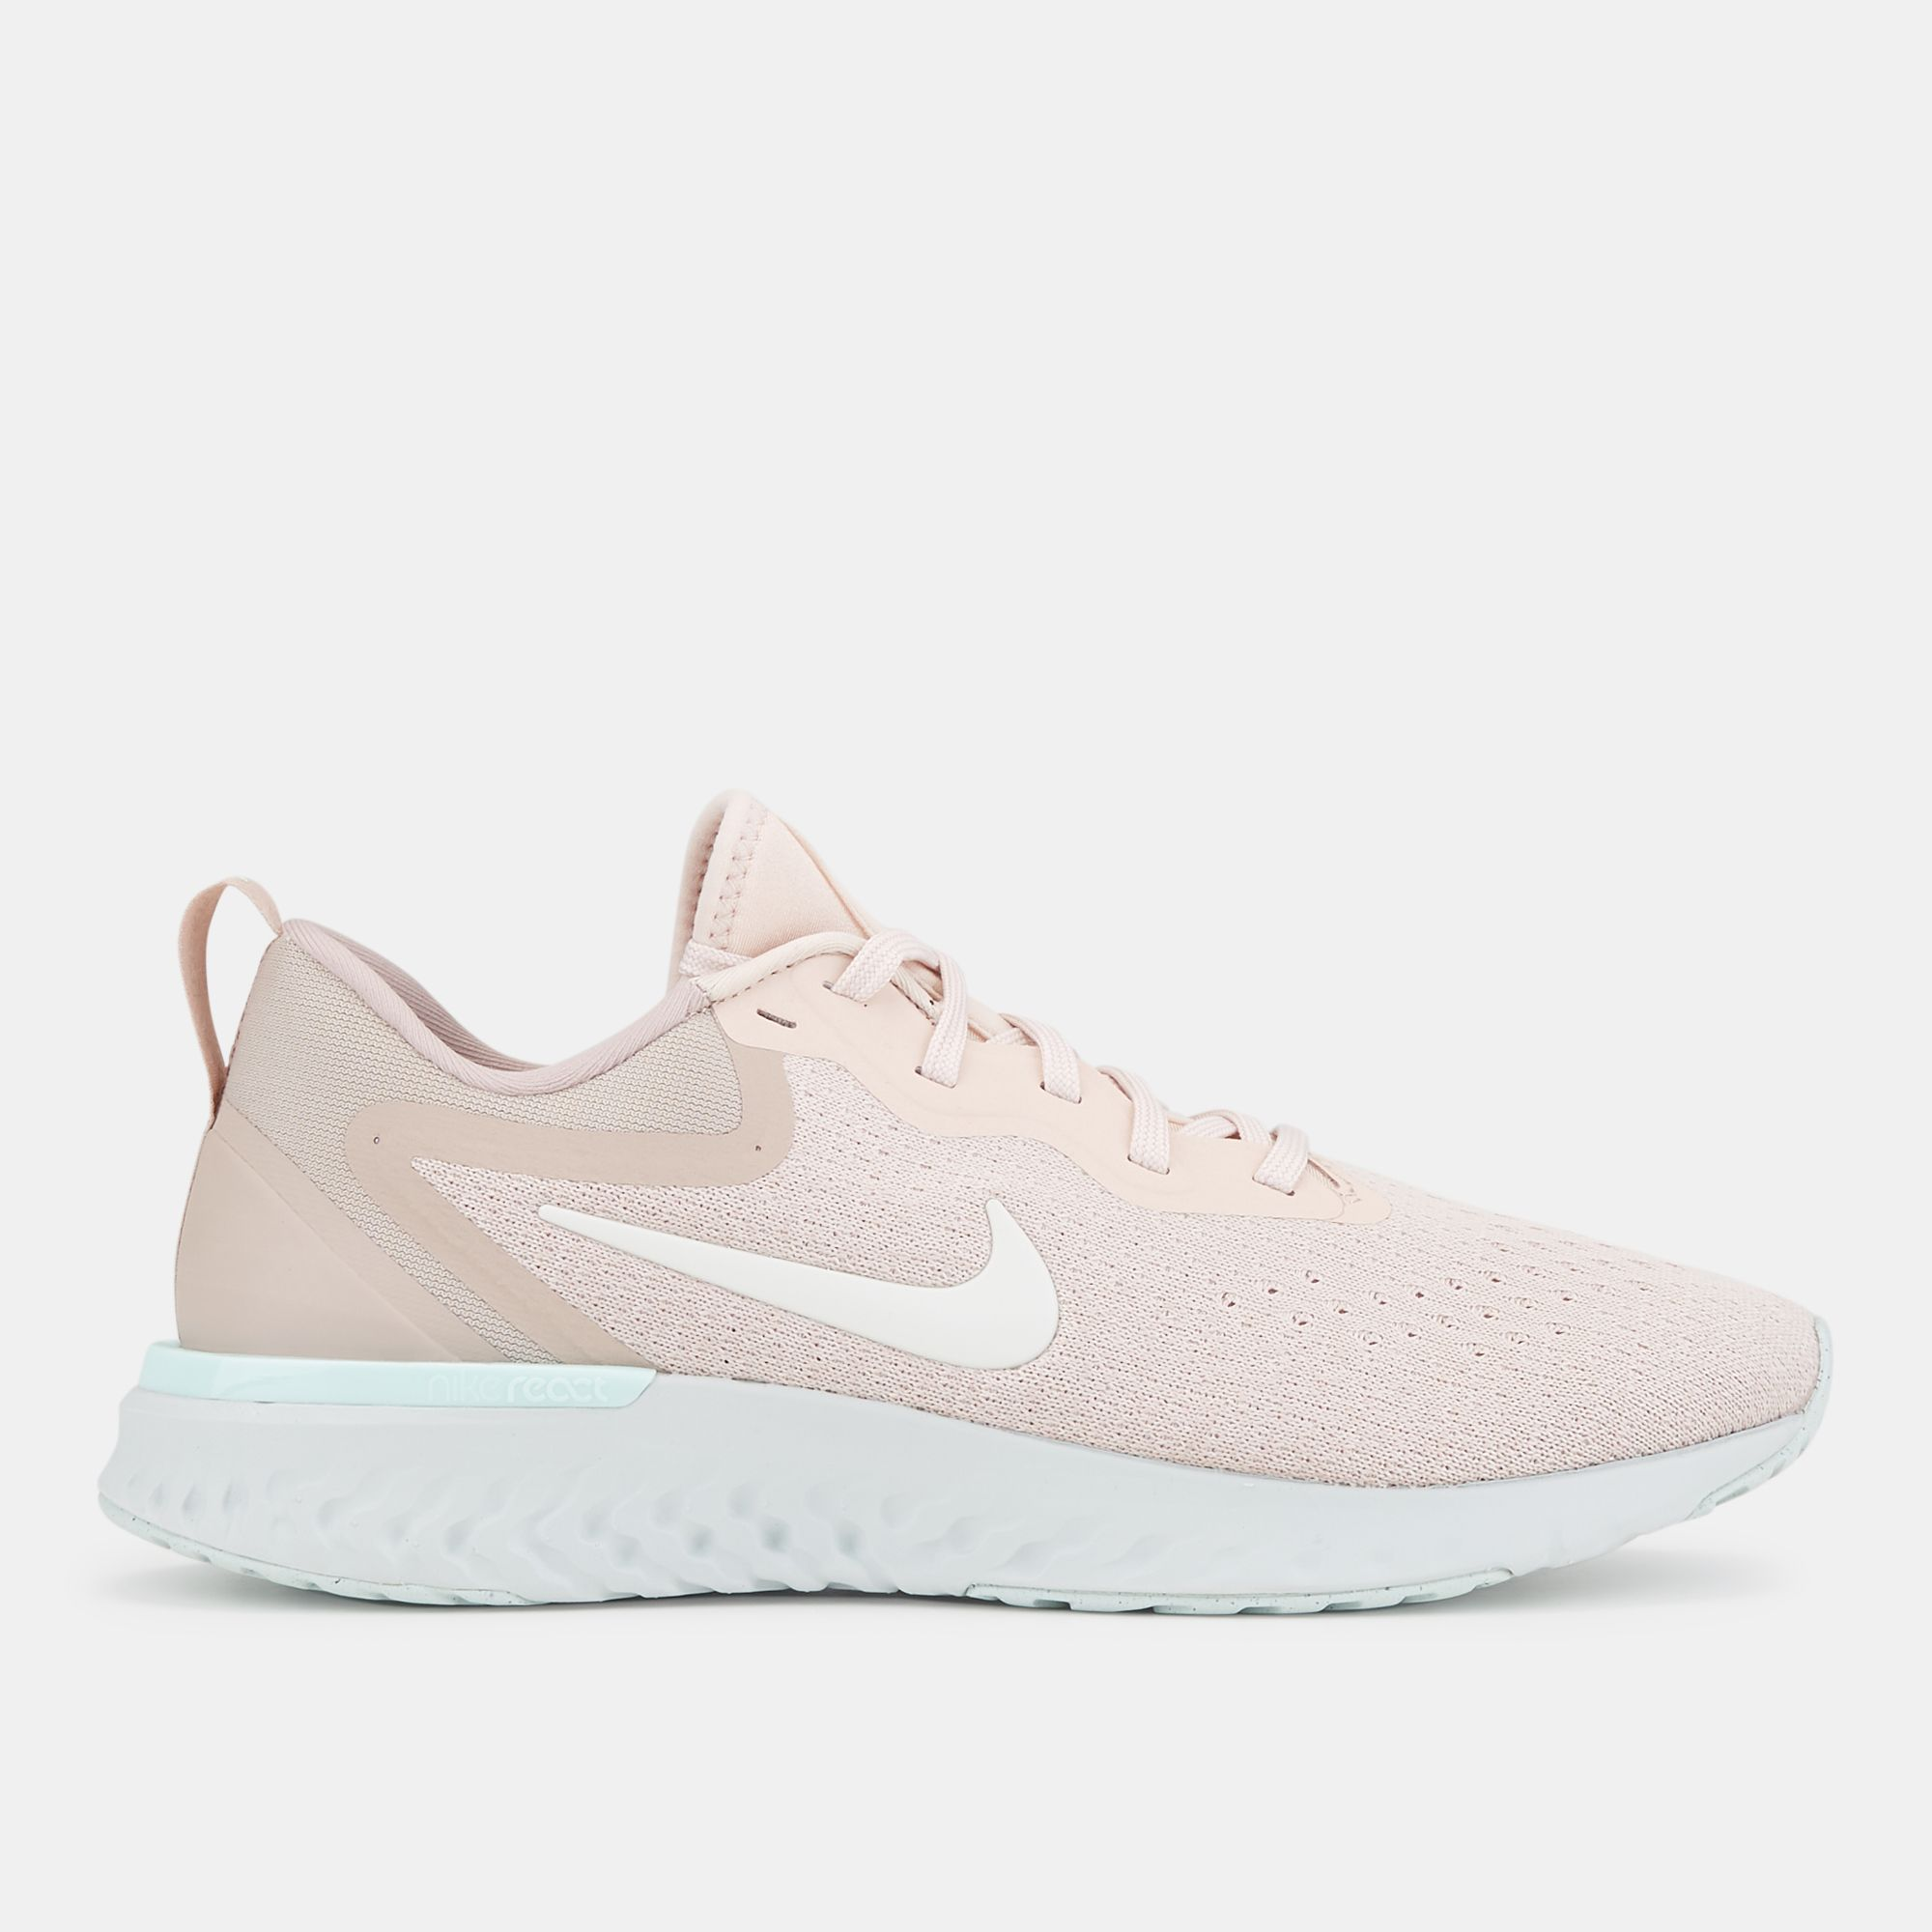 factory authentic 9d201 e4efd Nike Odyssey React Running Shoe   Road Running   Running Shoes ...